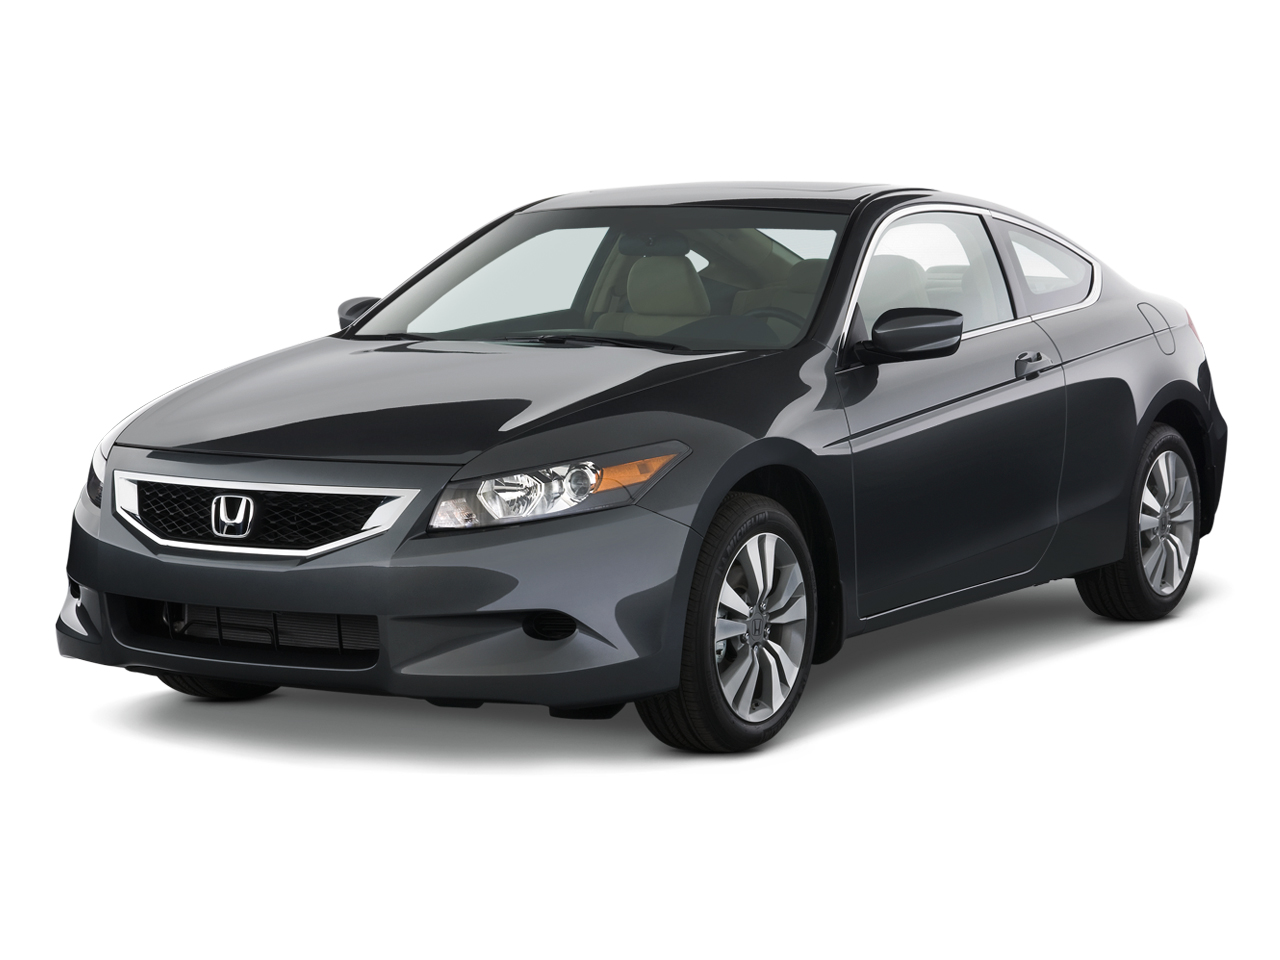 2010 Honda Accord Coupe Page 1 Review The Car Connection